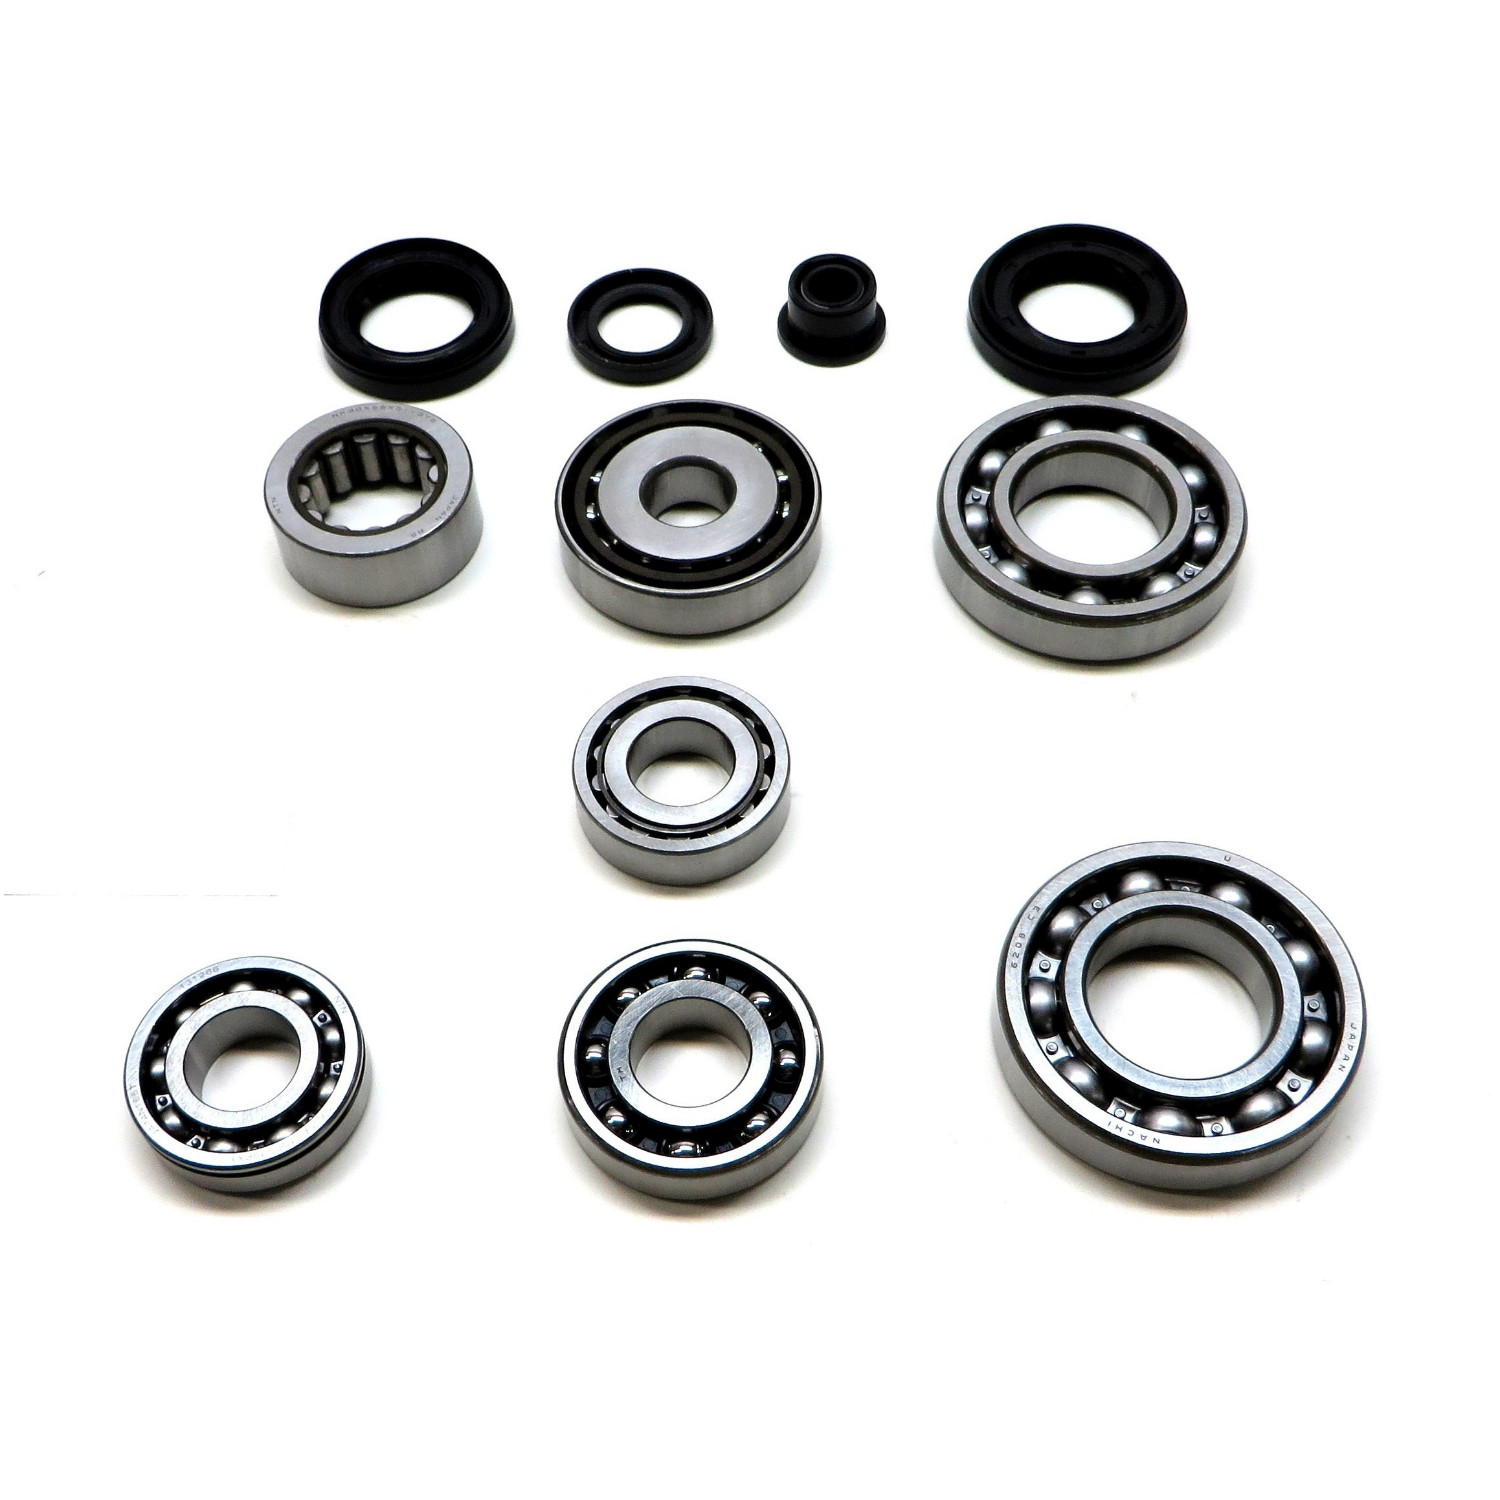 USA Standard Manual Transmission Bearing Kit 1992-1995